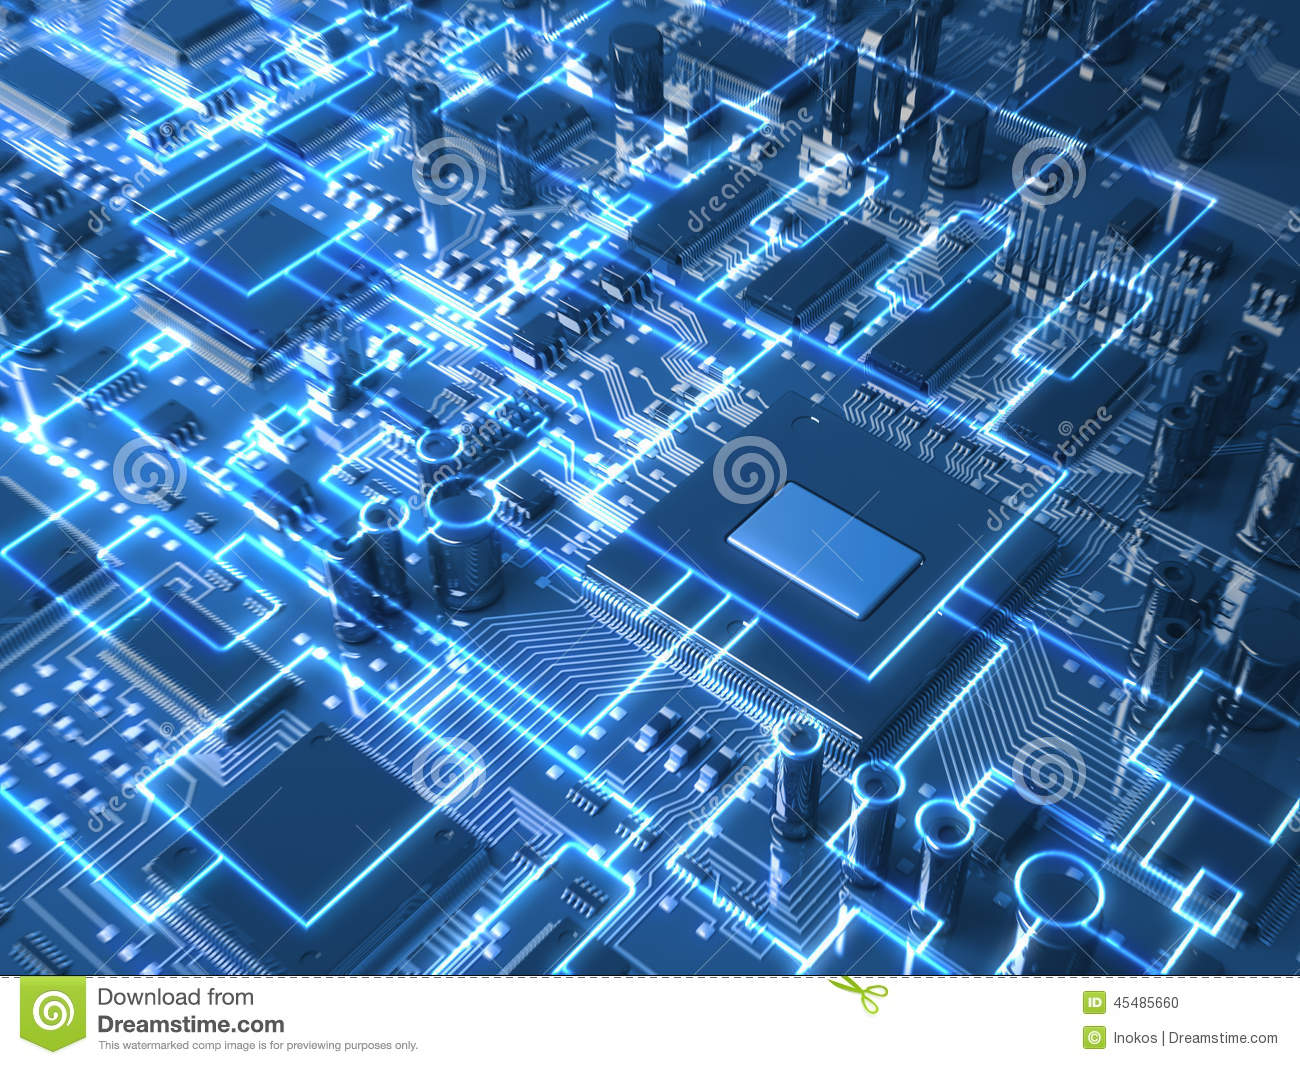 Motherboard Circuit Illustration: Fantasy Circuit Board Or Mainboard With Glowing Schemes